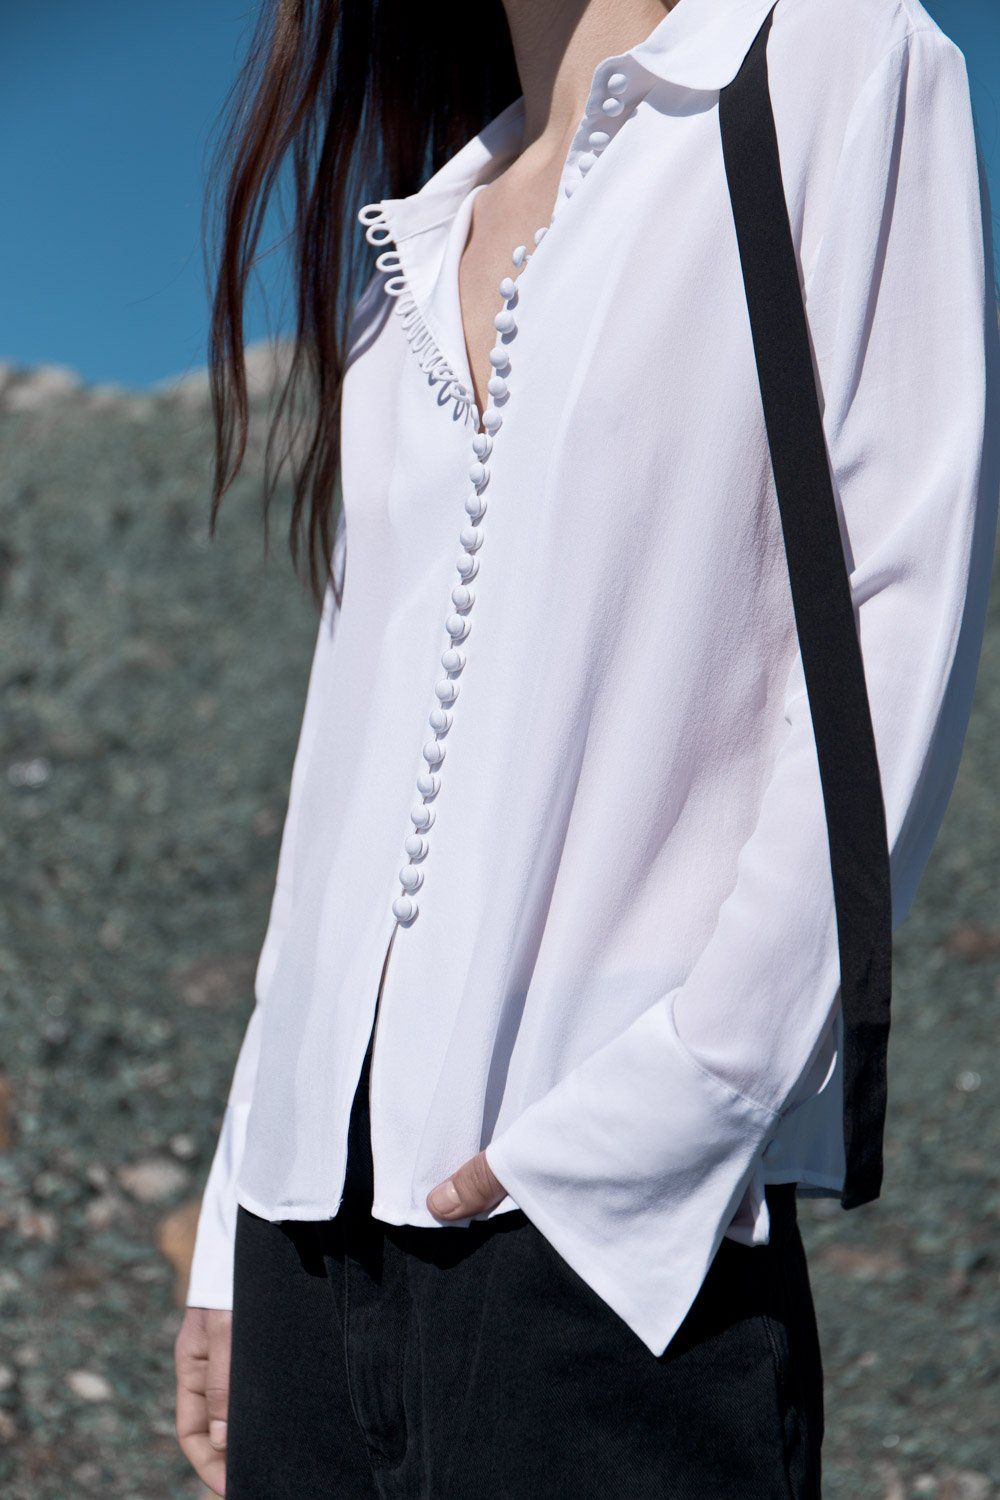 ca363b3f54be1 Long-sleeve silk shirt featuring covered looping button detail with  removable tonal bow tie at neck